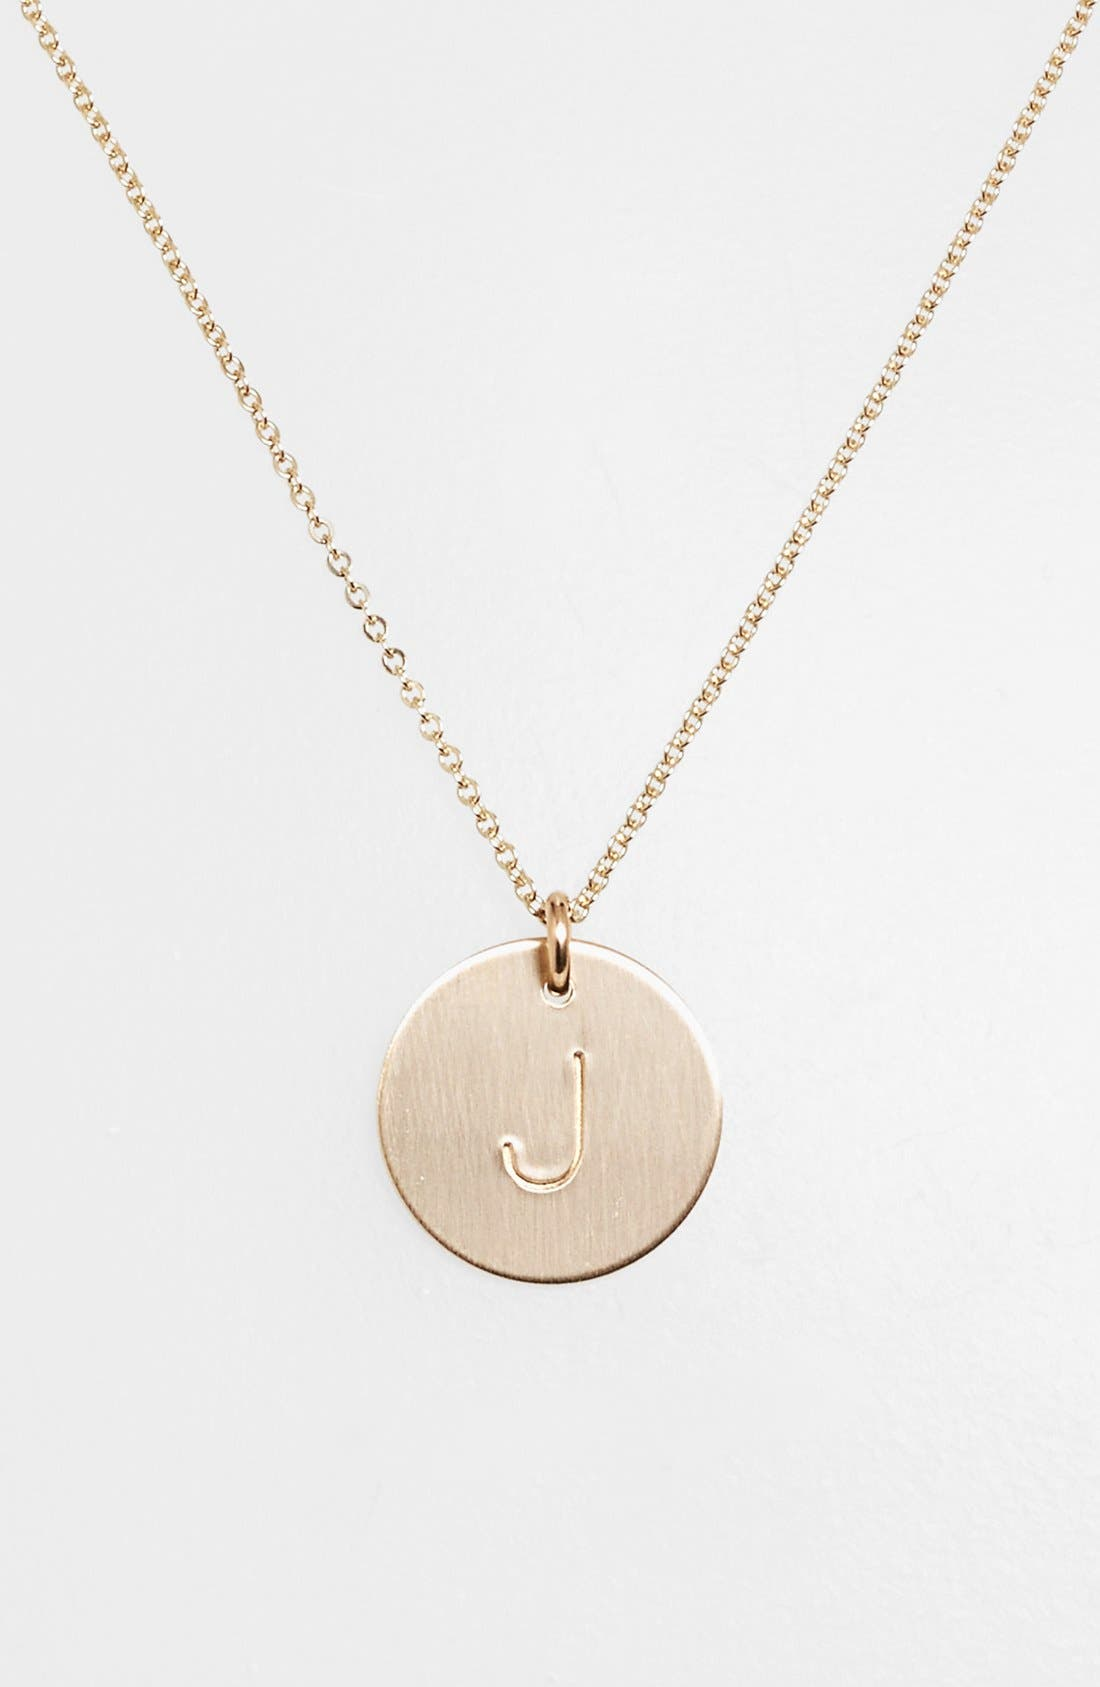 Alternate Image 1 Selected - Nashelle 14k-Gold Fill Initial Disc Necklace